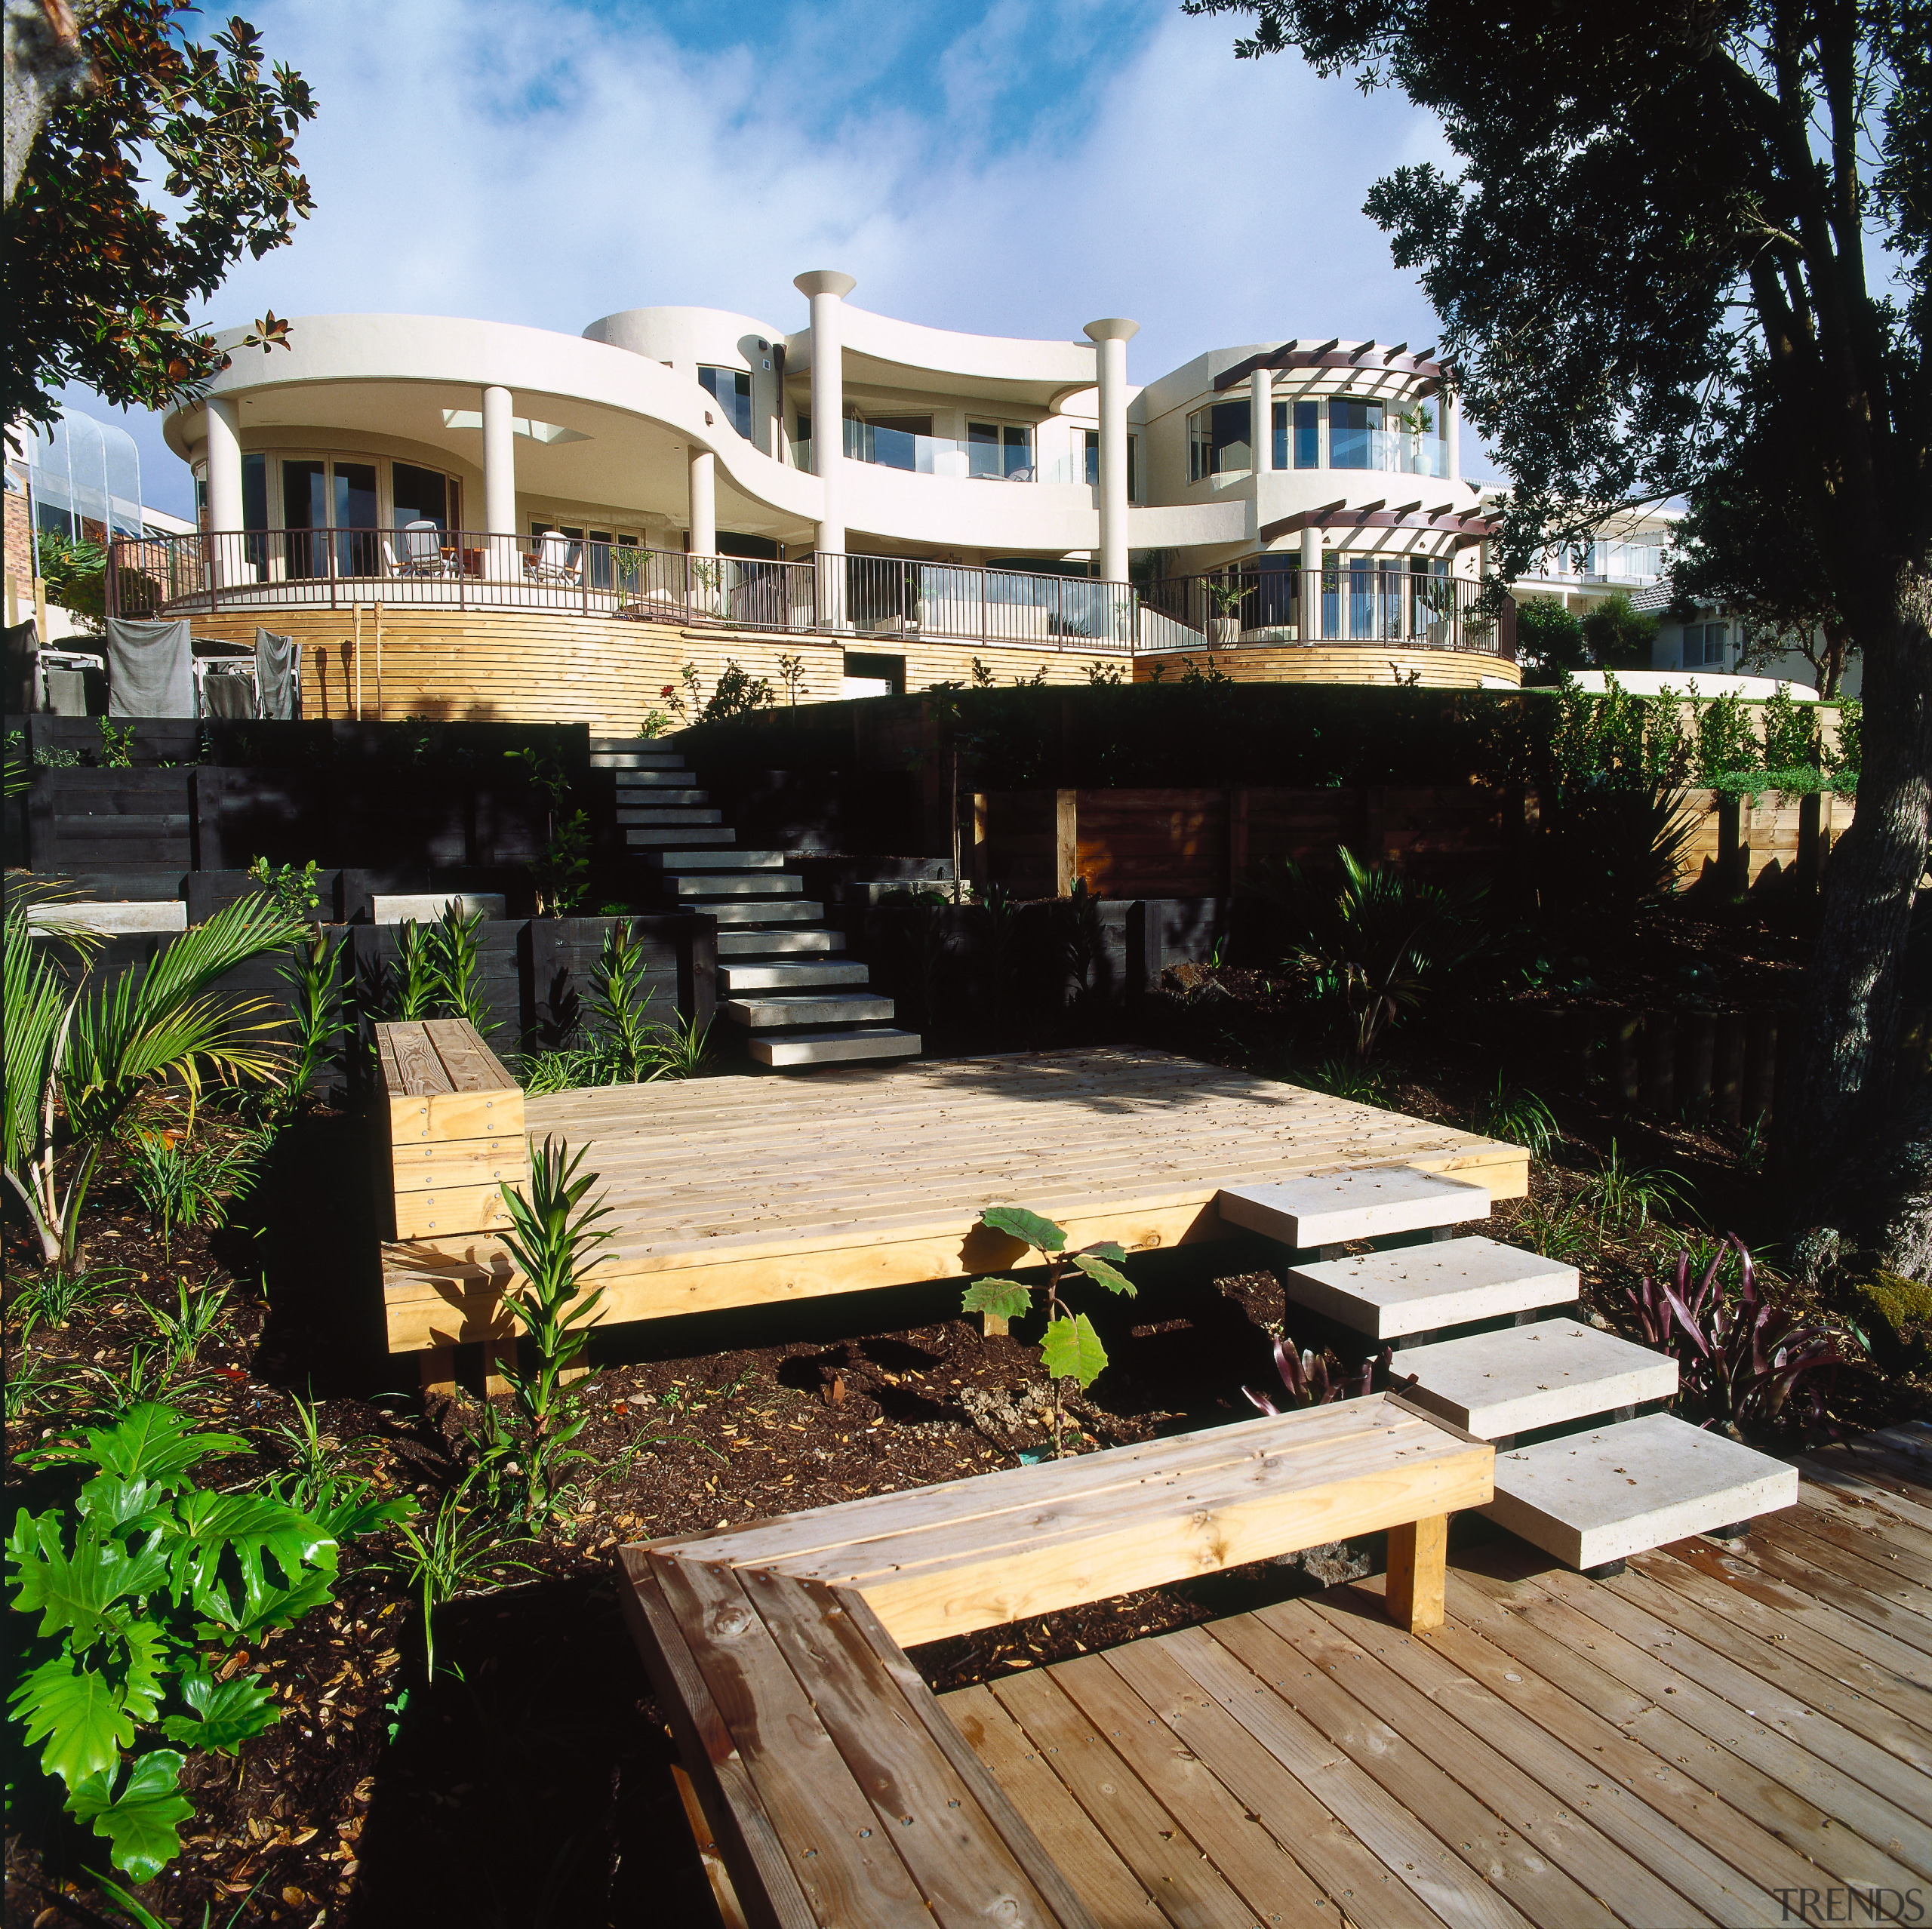 A view of the entire house from the architecture, cottage, deck, estate, home, house, outdoor structure, property, real estate, resort, black